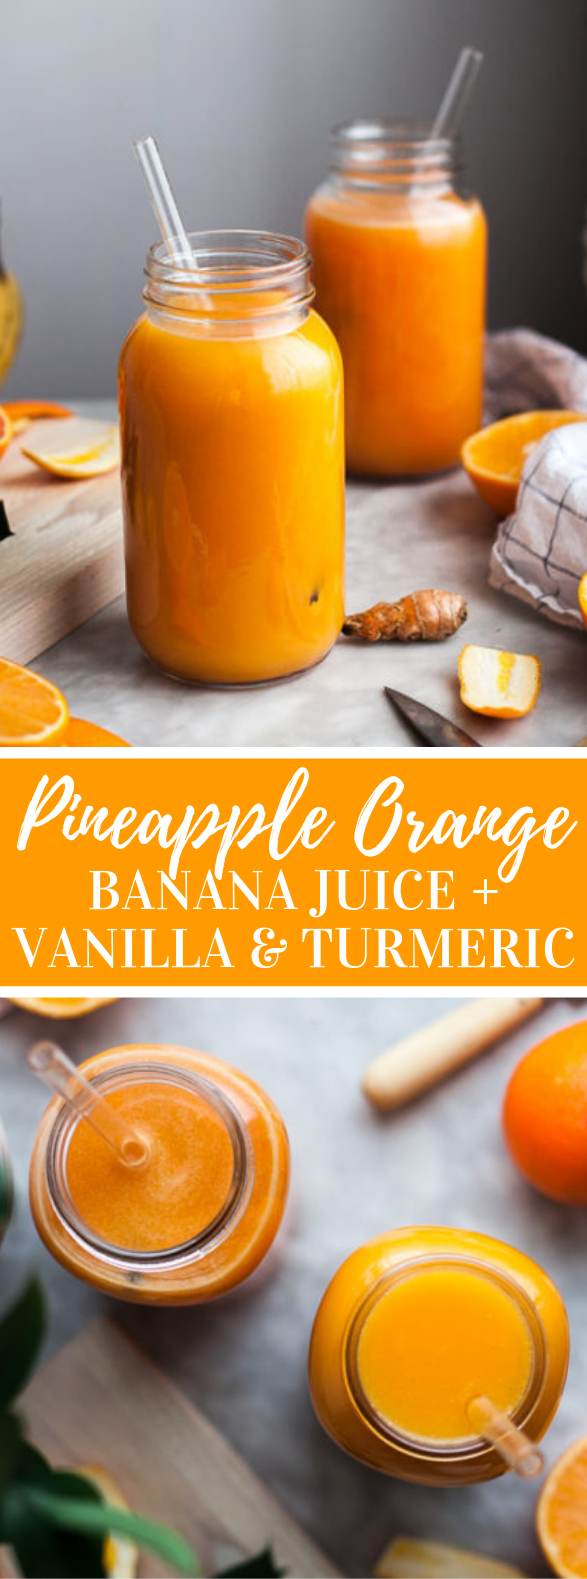 Pineapple Orange Banana Juice + Vanilla & Turmeric #drinks #healthy